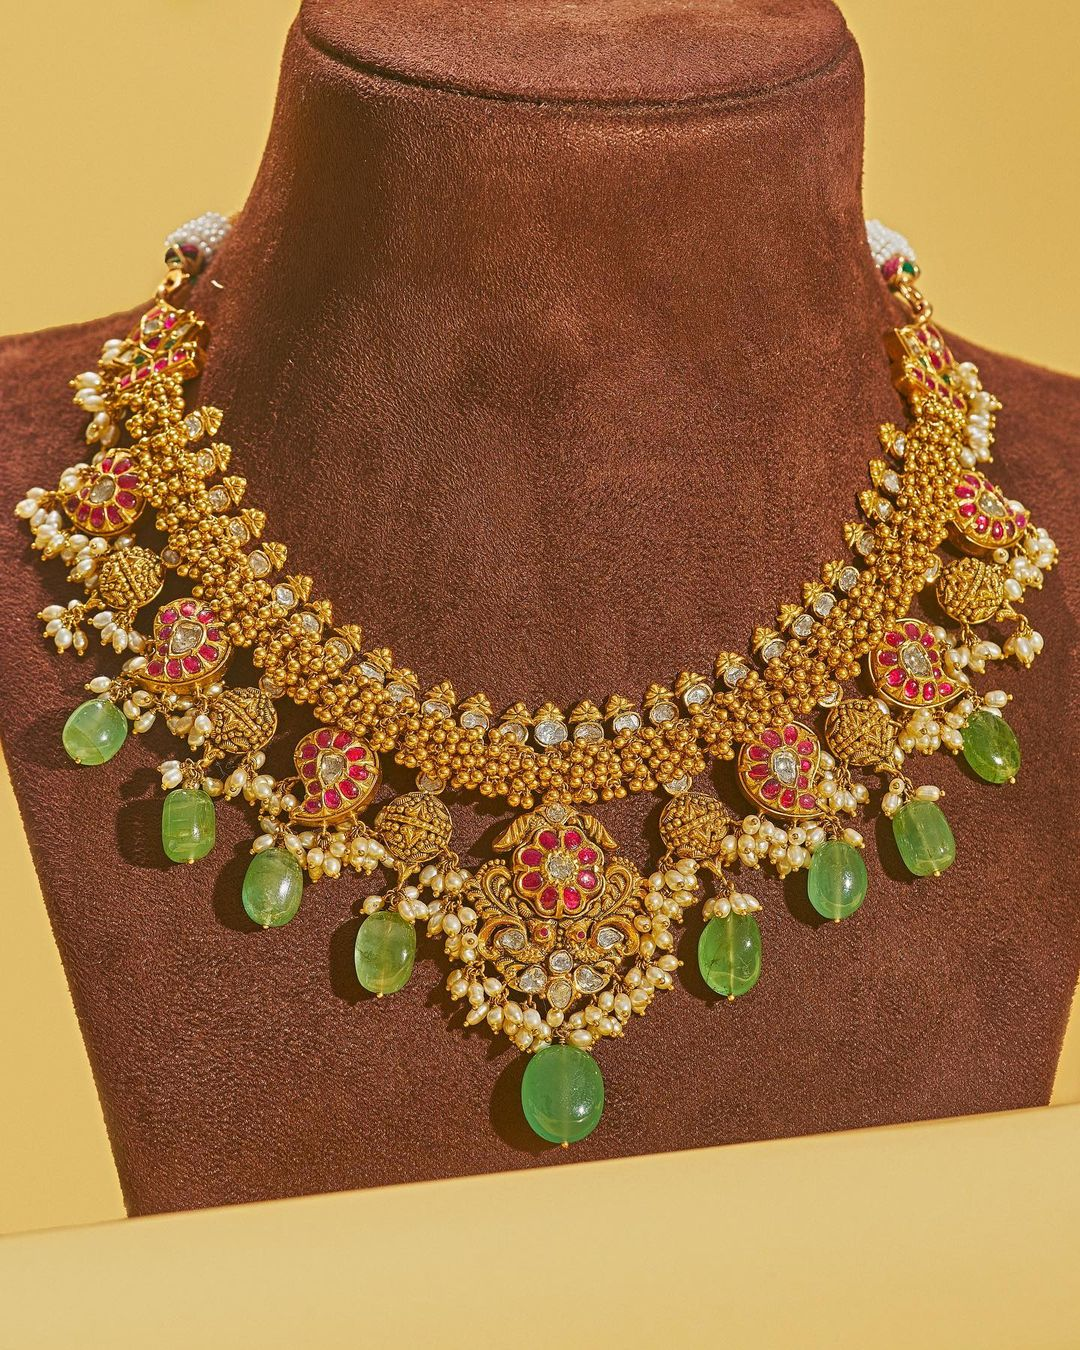 rubies-emeralds-polkis-gold-necklace